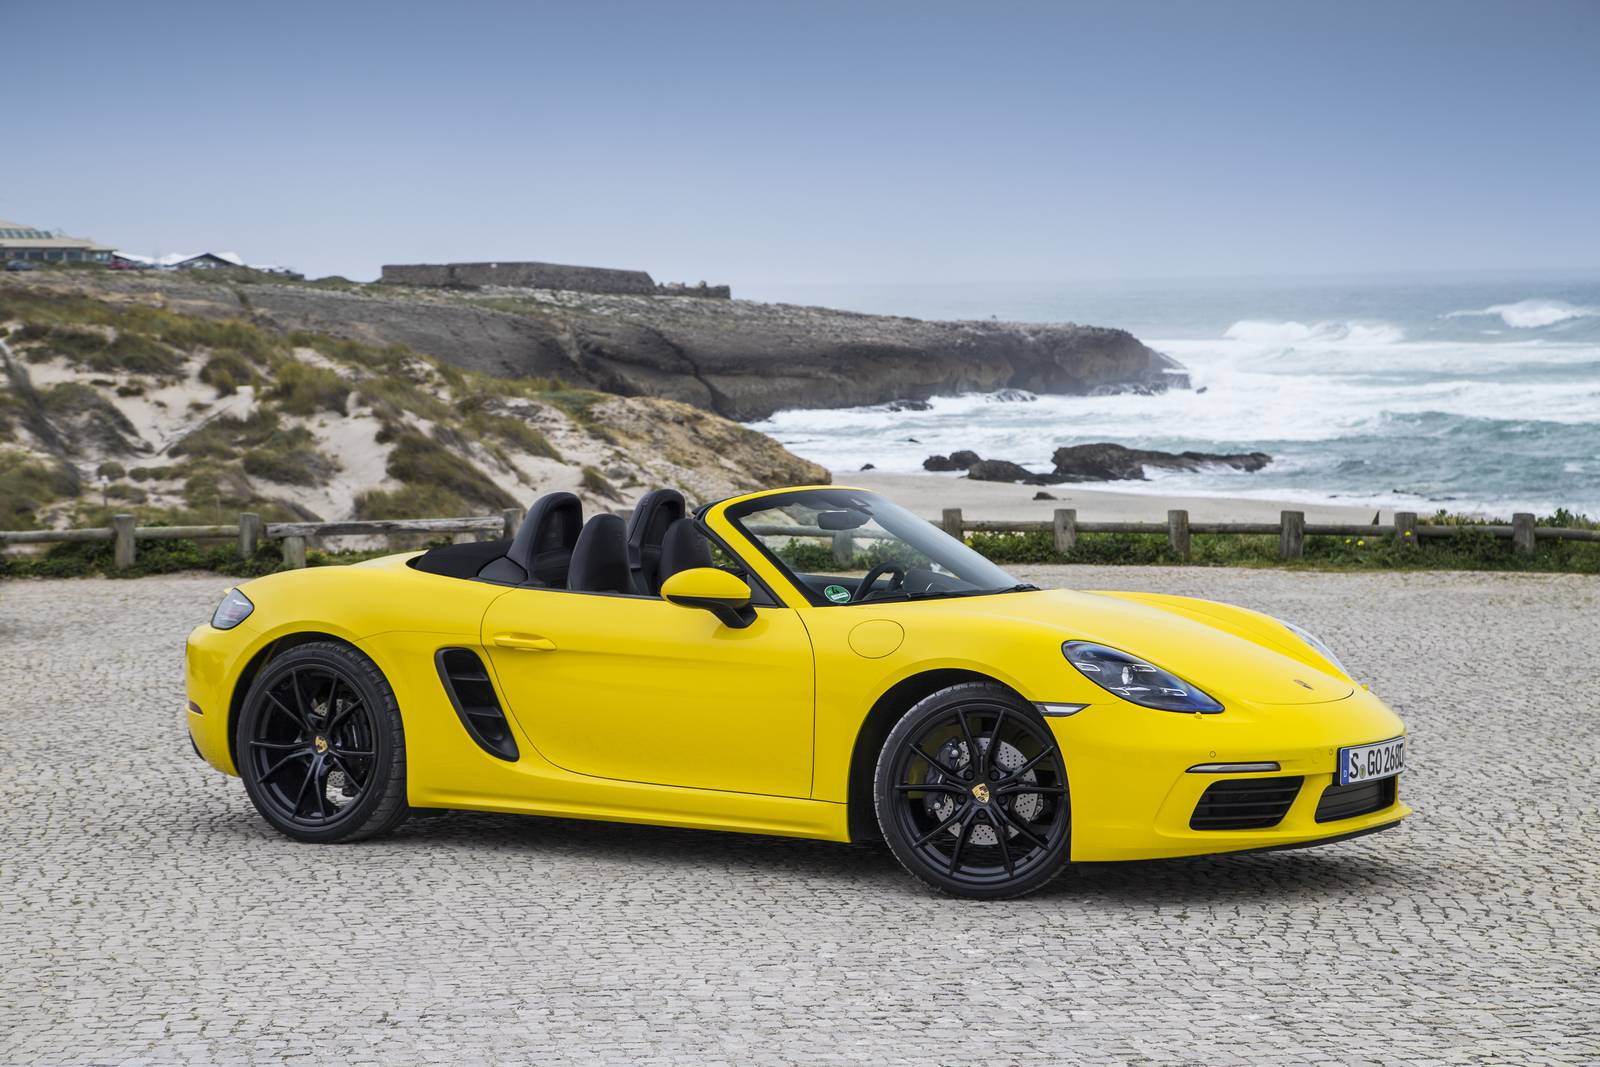 Image Racing Yellow Porsche 718 Boxster 9 Jpg Autopedia Fandom Powered By Wikia